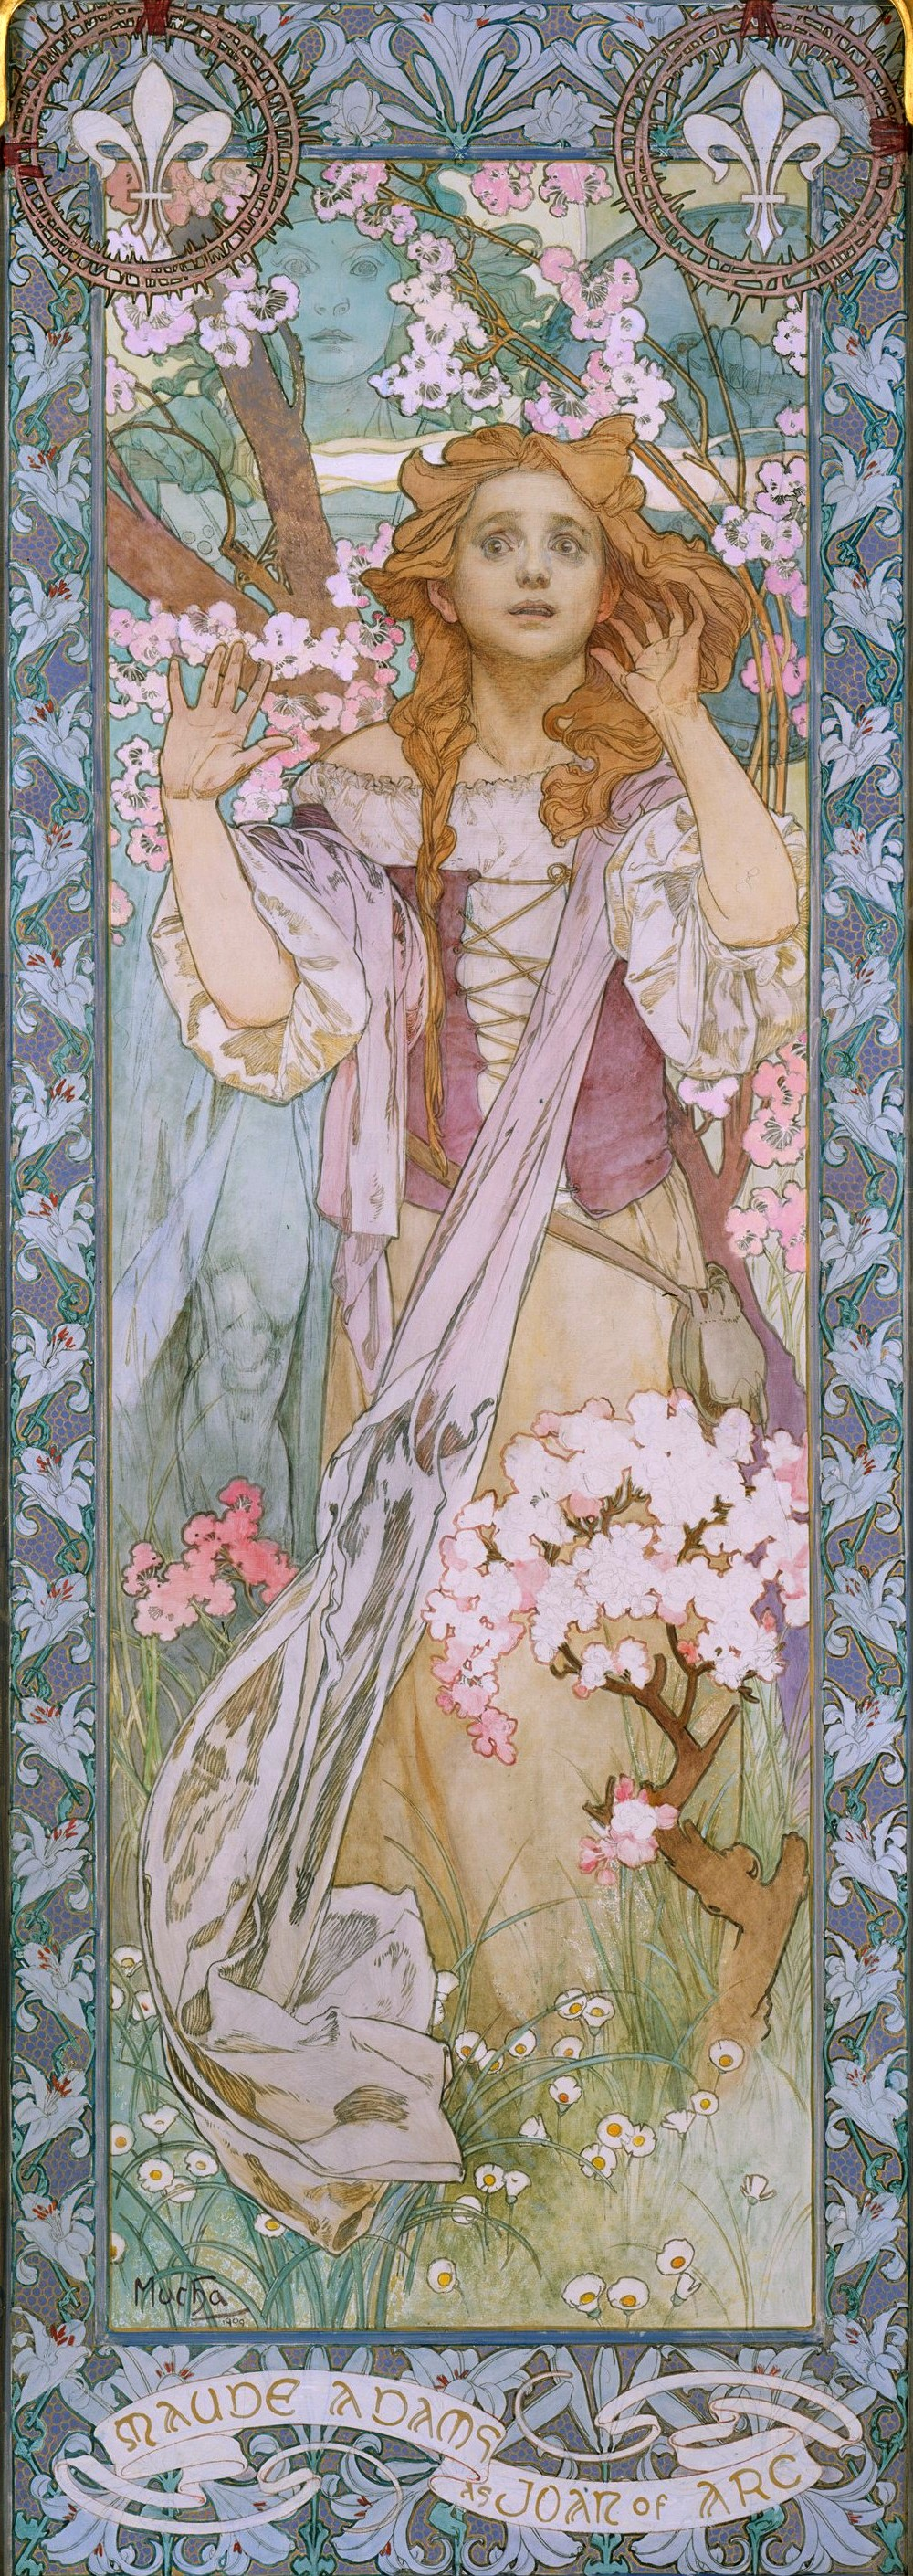 Alphonse Mucha's poster for Joan of Arc 1909